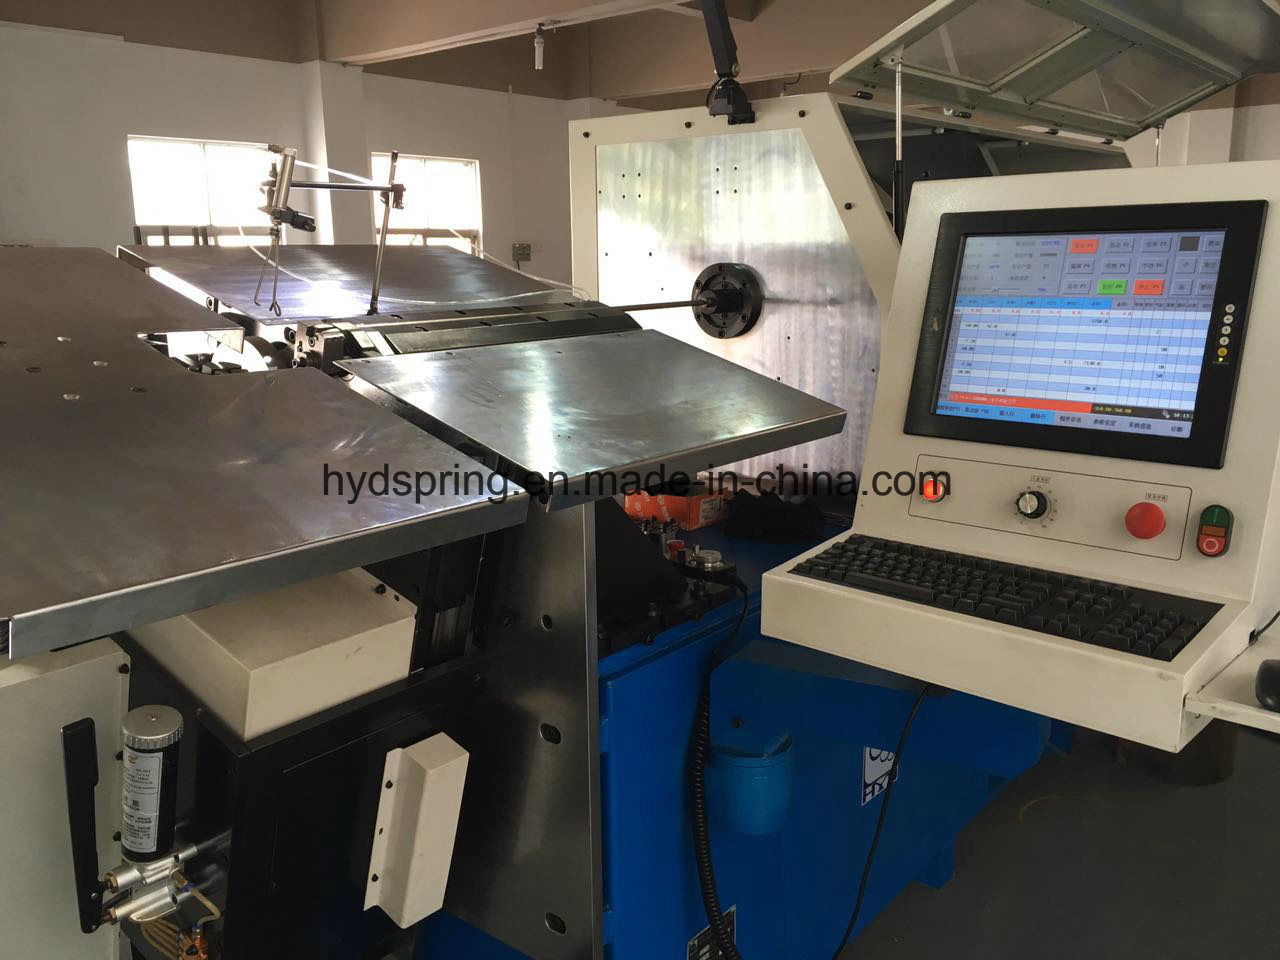 New Machine Hyd-60-10A Automatic Wire Bending Machine & Spring Machine pictures & photos